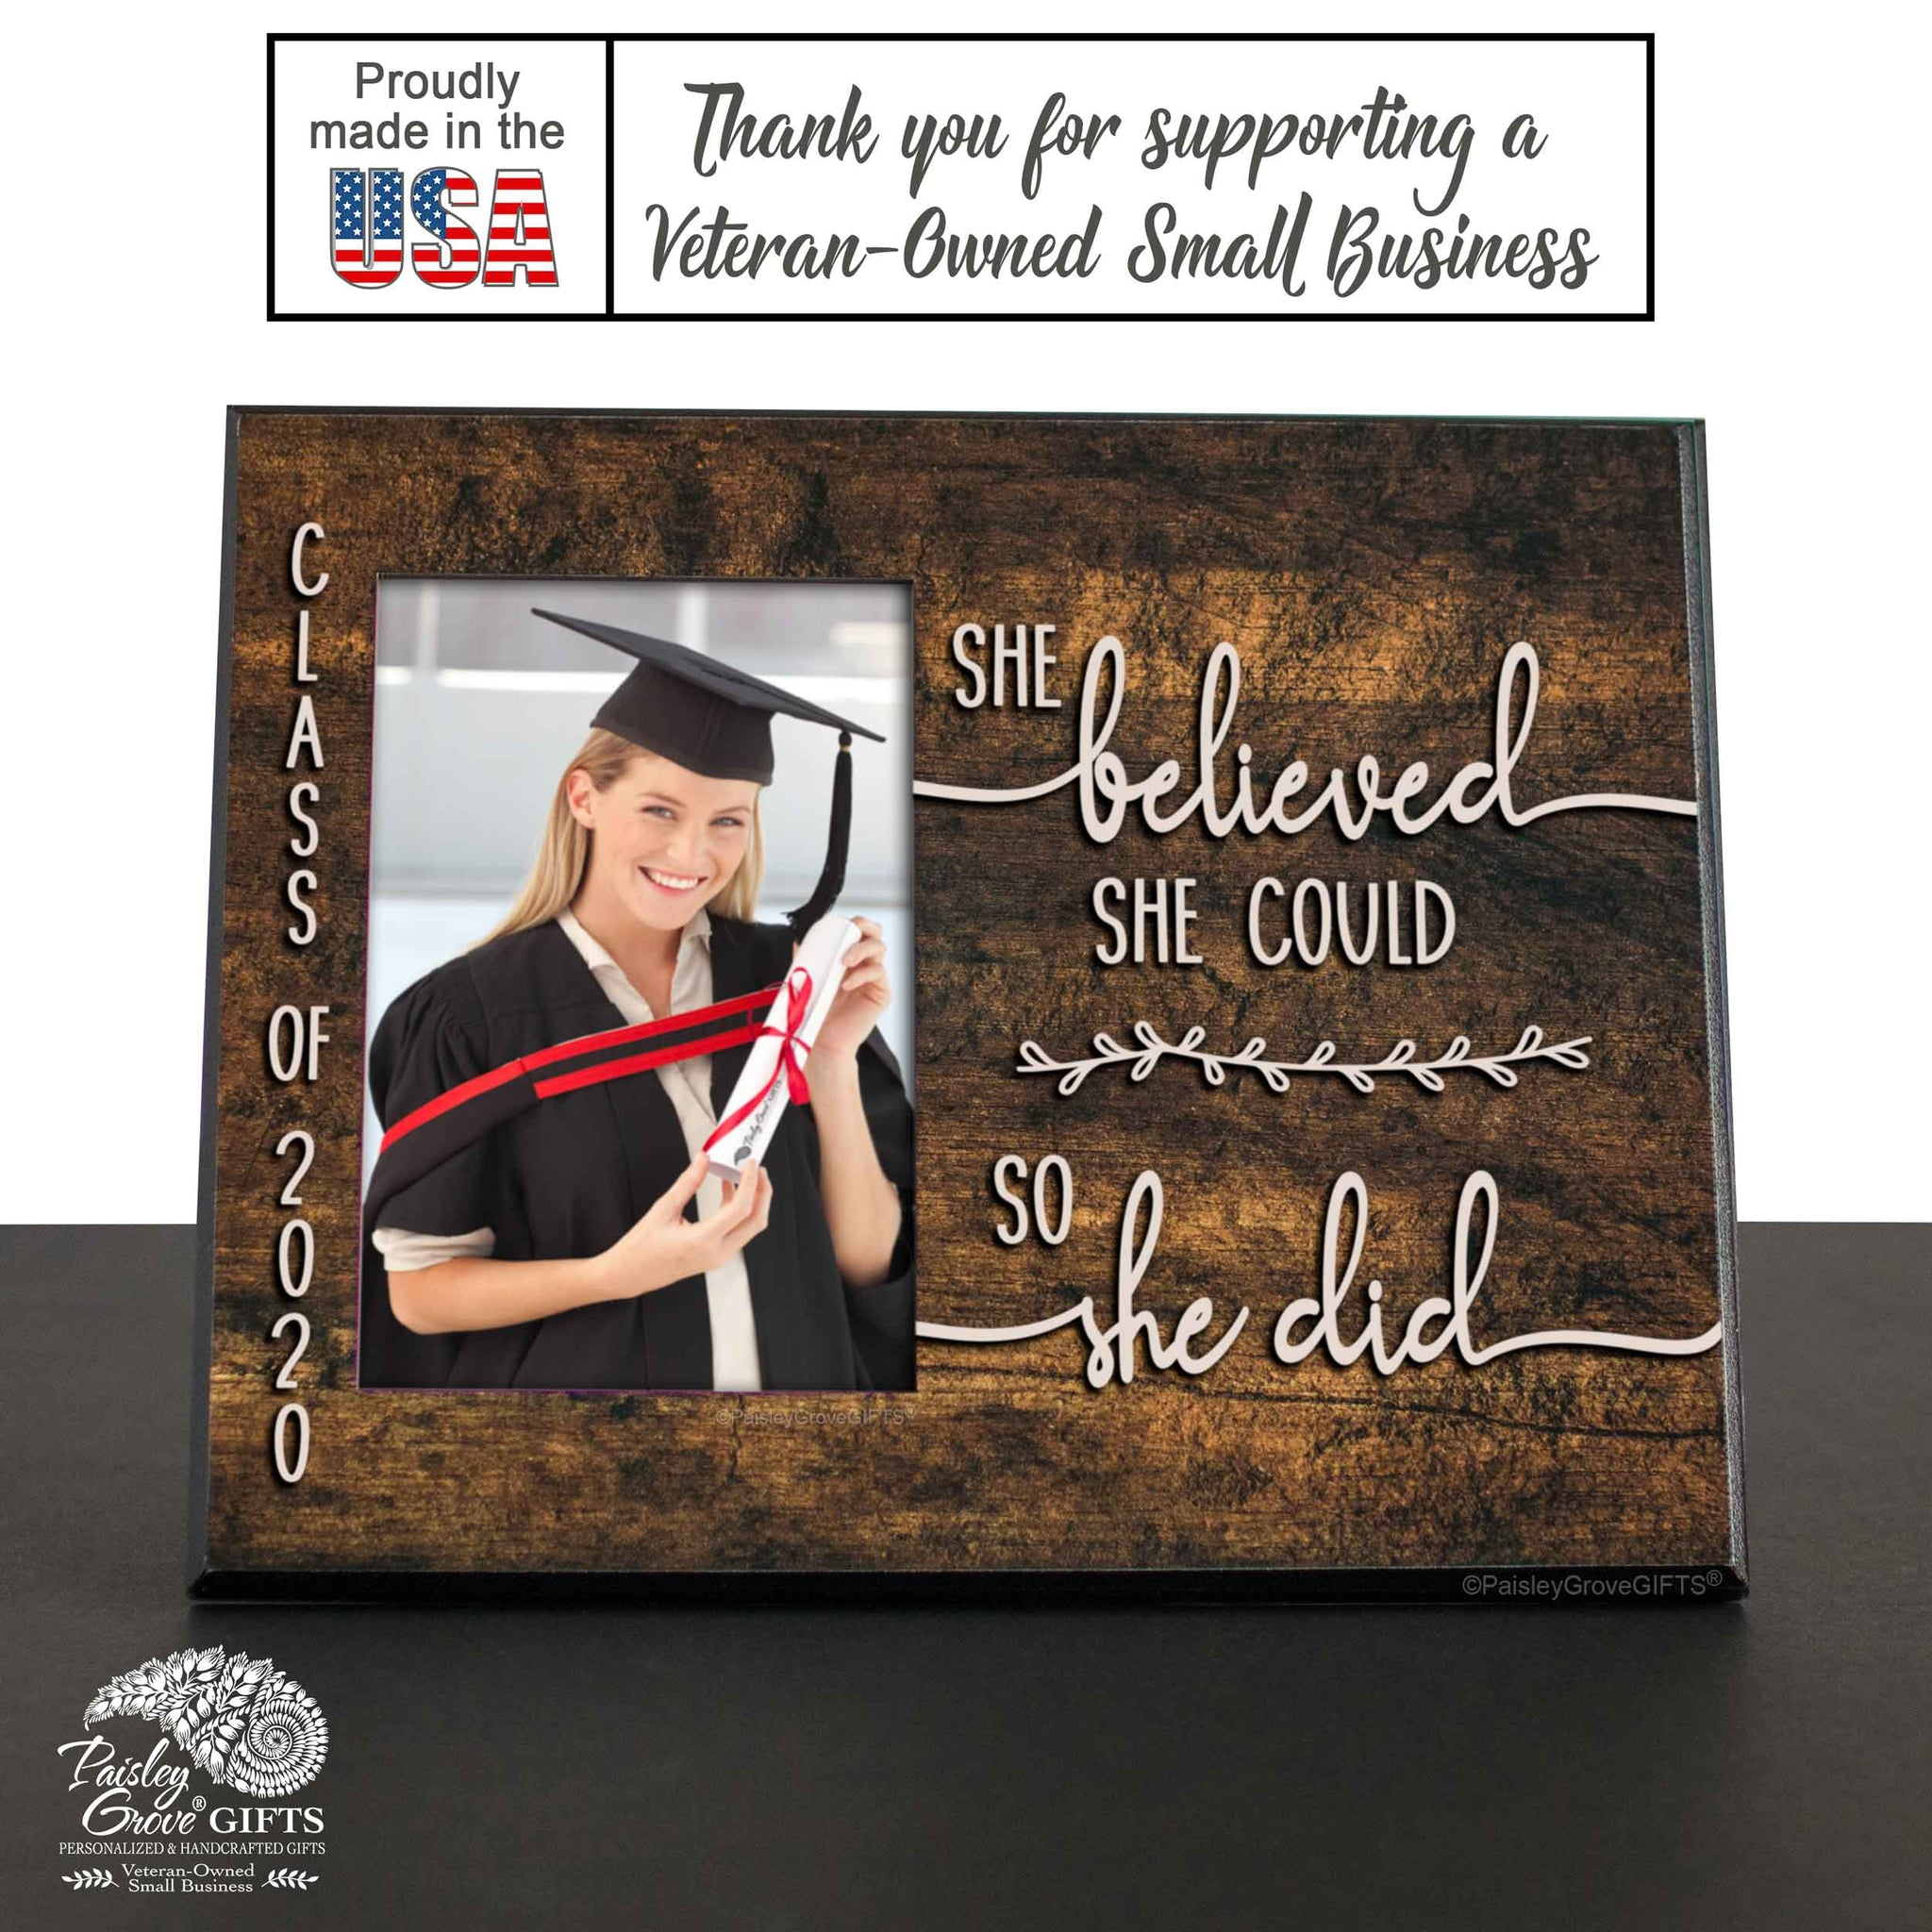 CopyrightPaisleyGroveGIFTS S226f Made in the USA Sentimental Graduation Keepsake Graduate Picture Frame